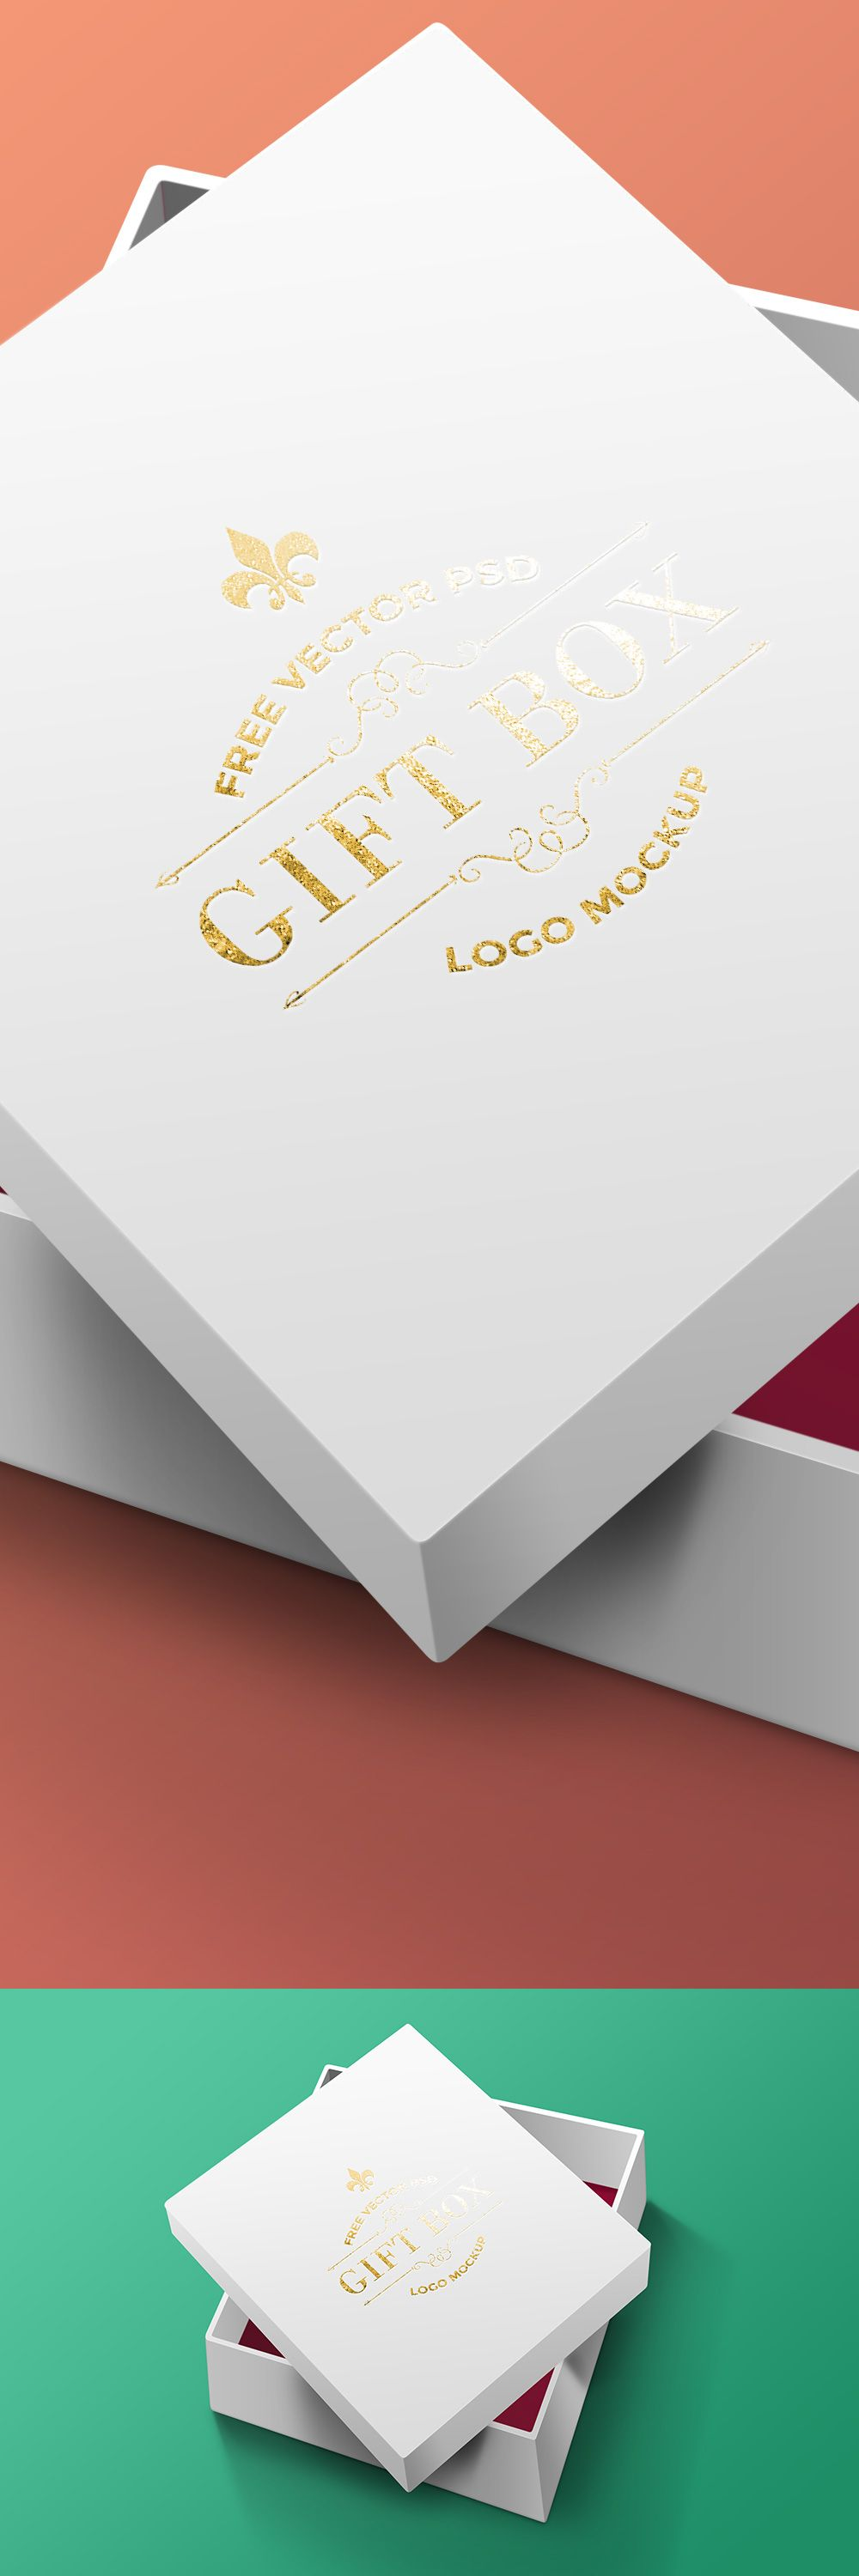 Gift box psd free download mockup free photoshop and free gifts youve looking for gift box psd mockup then youve found it check it out get the result you want negle Images